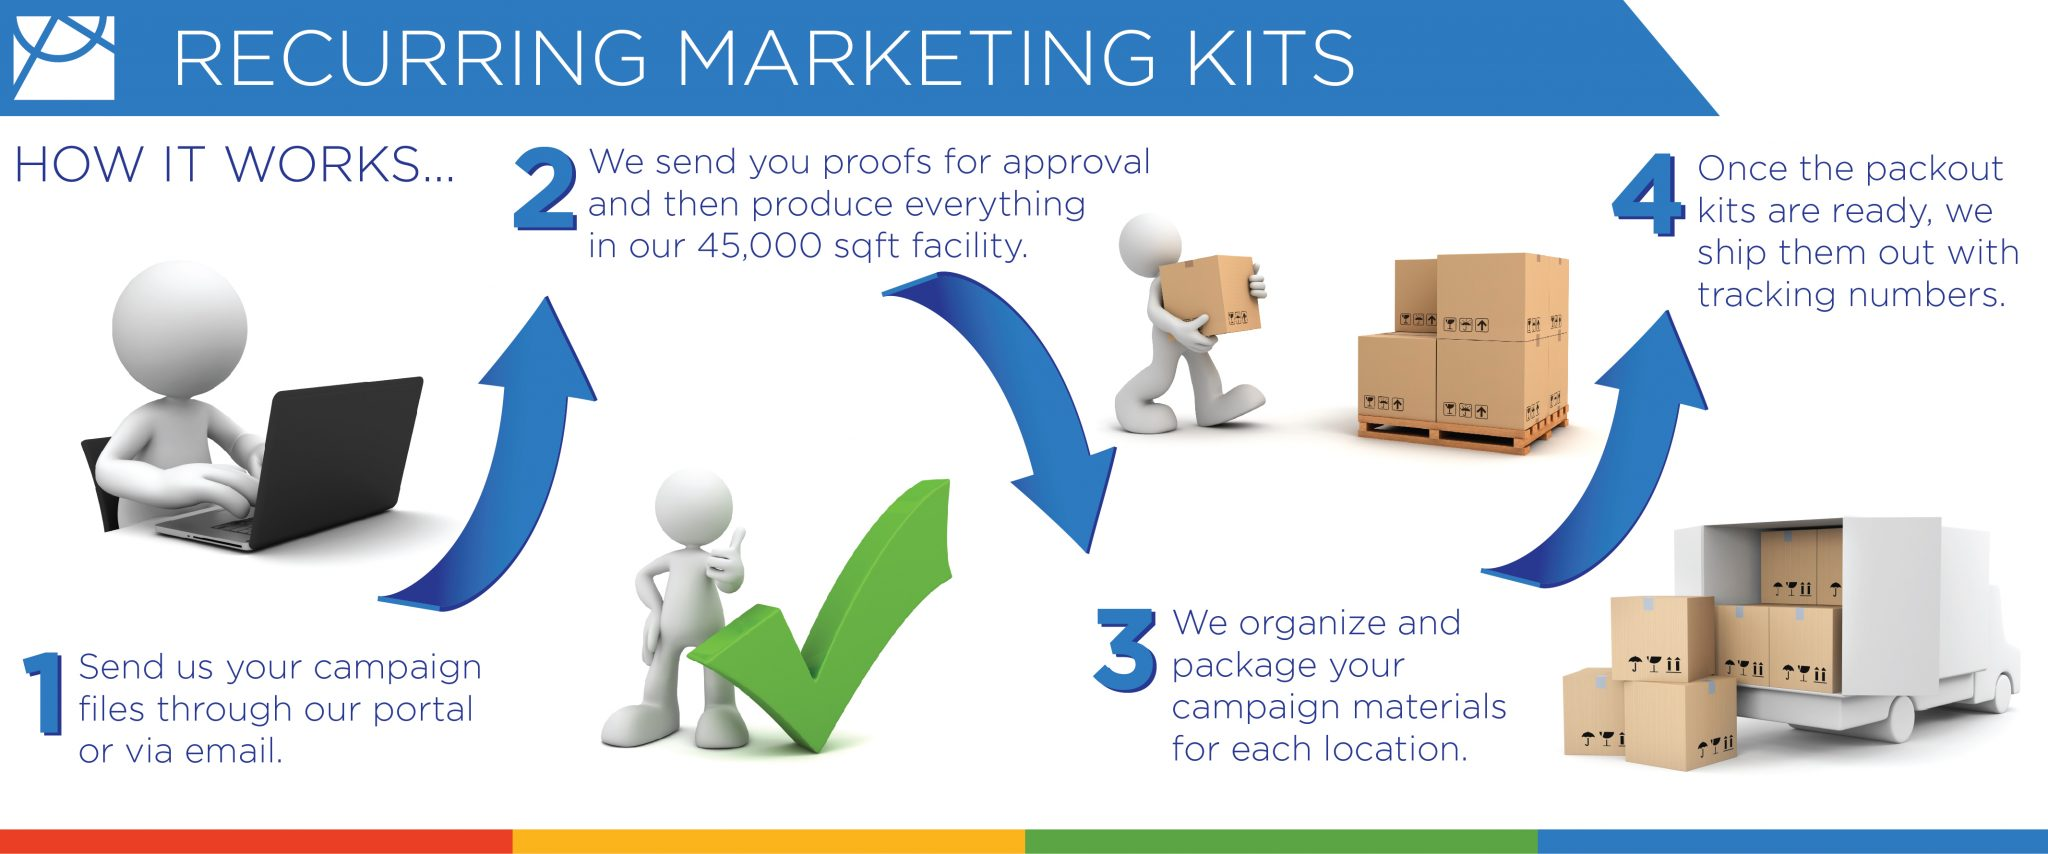 Recurring Marketing Kits